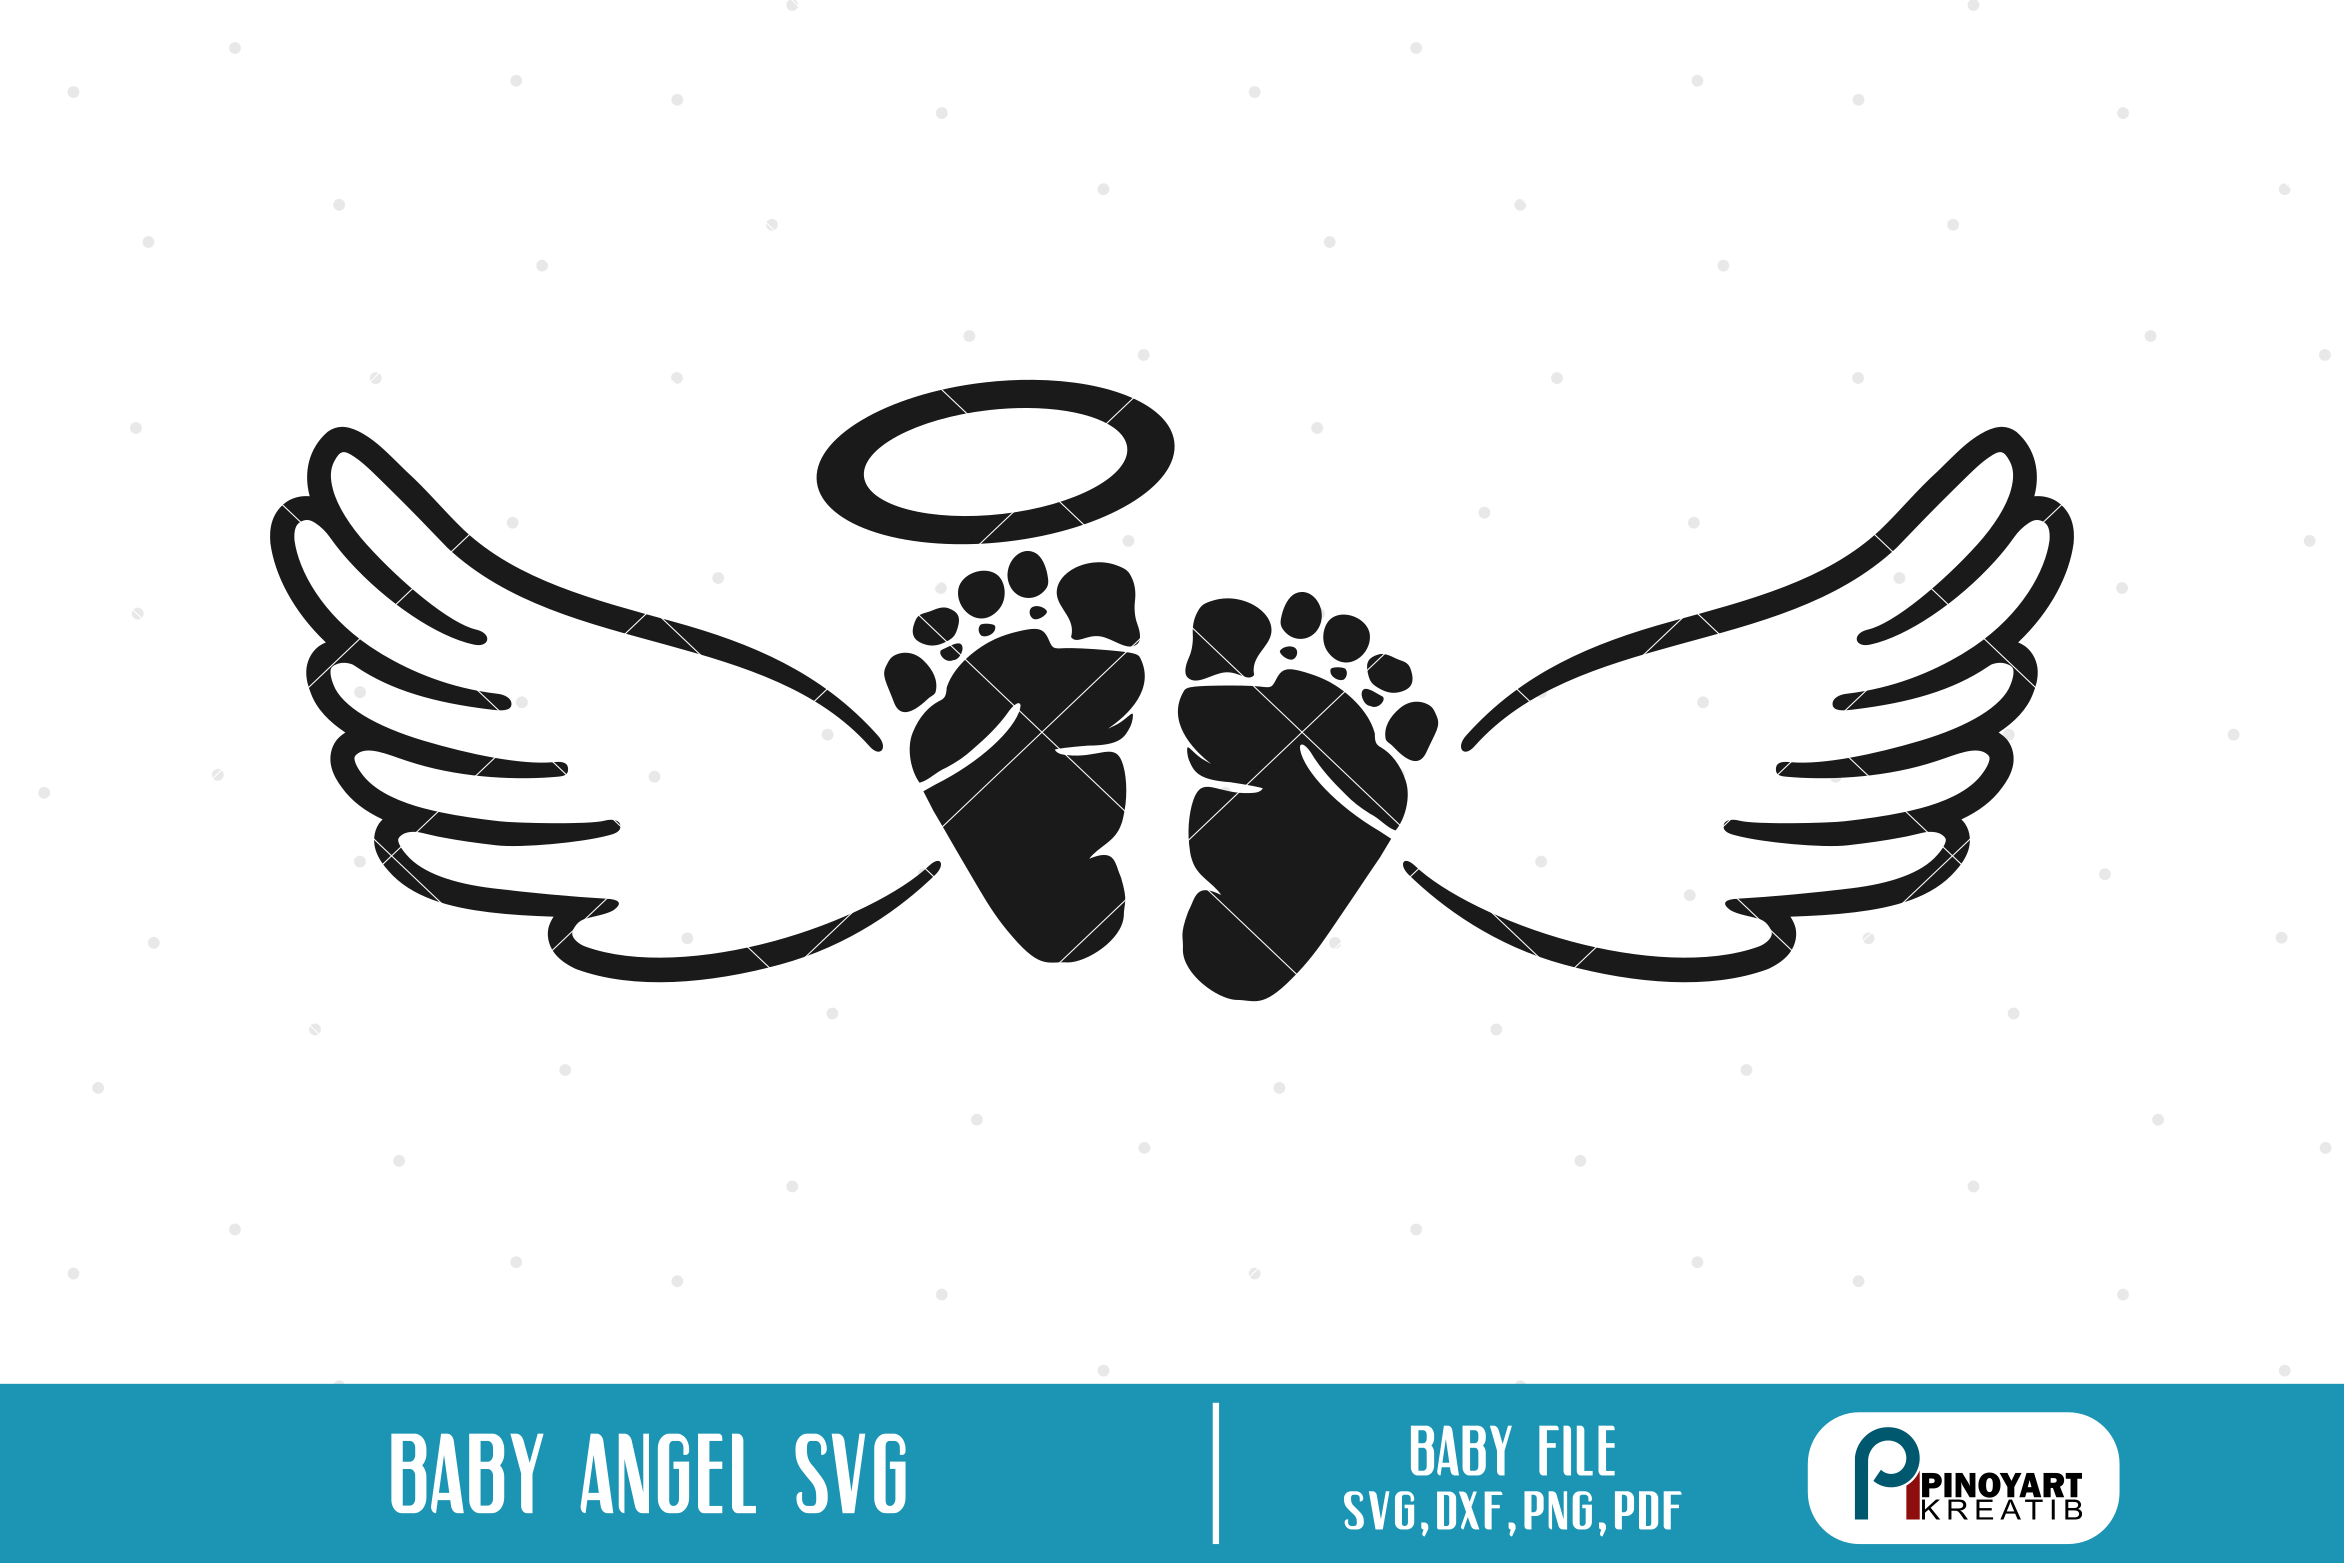 Download Free Baby Angel Graphic By Pinoyartkreatib Creative Fabrica for Cricut Explore, Silhouette and other cutting machines.